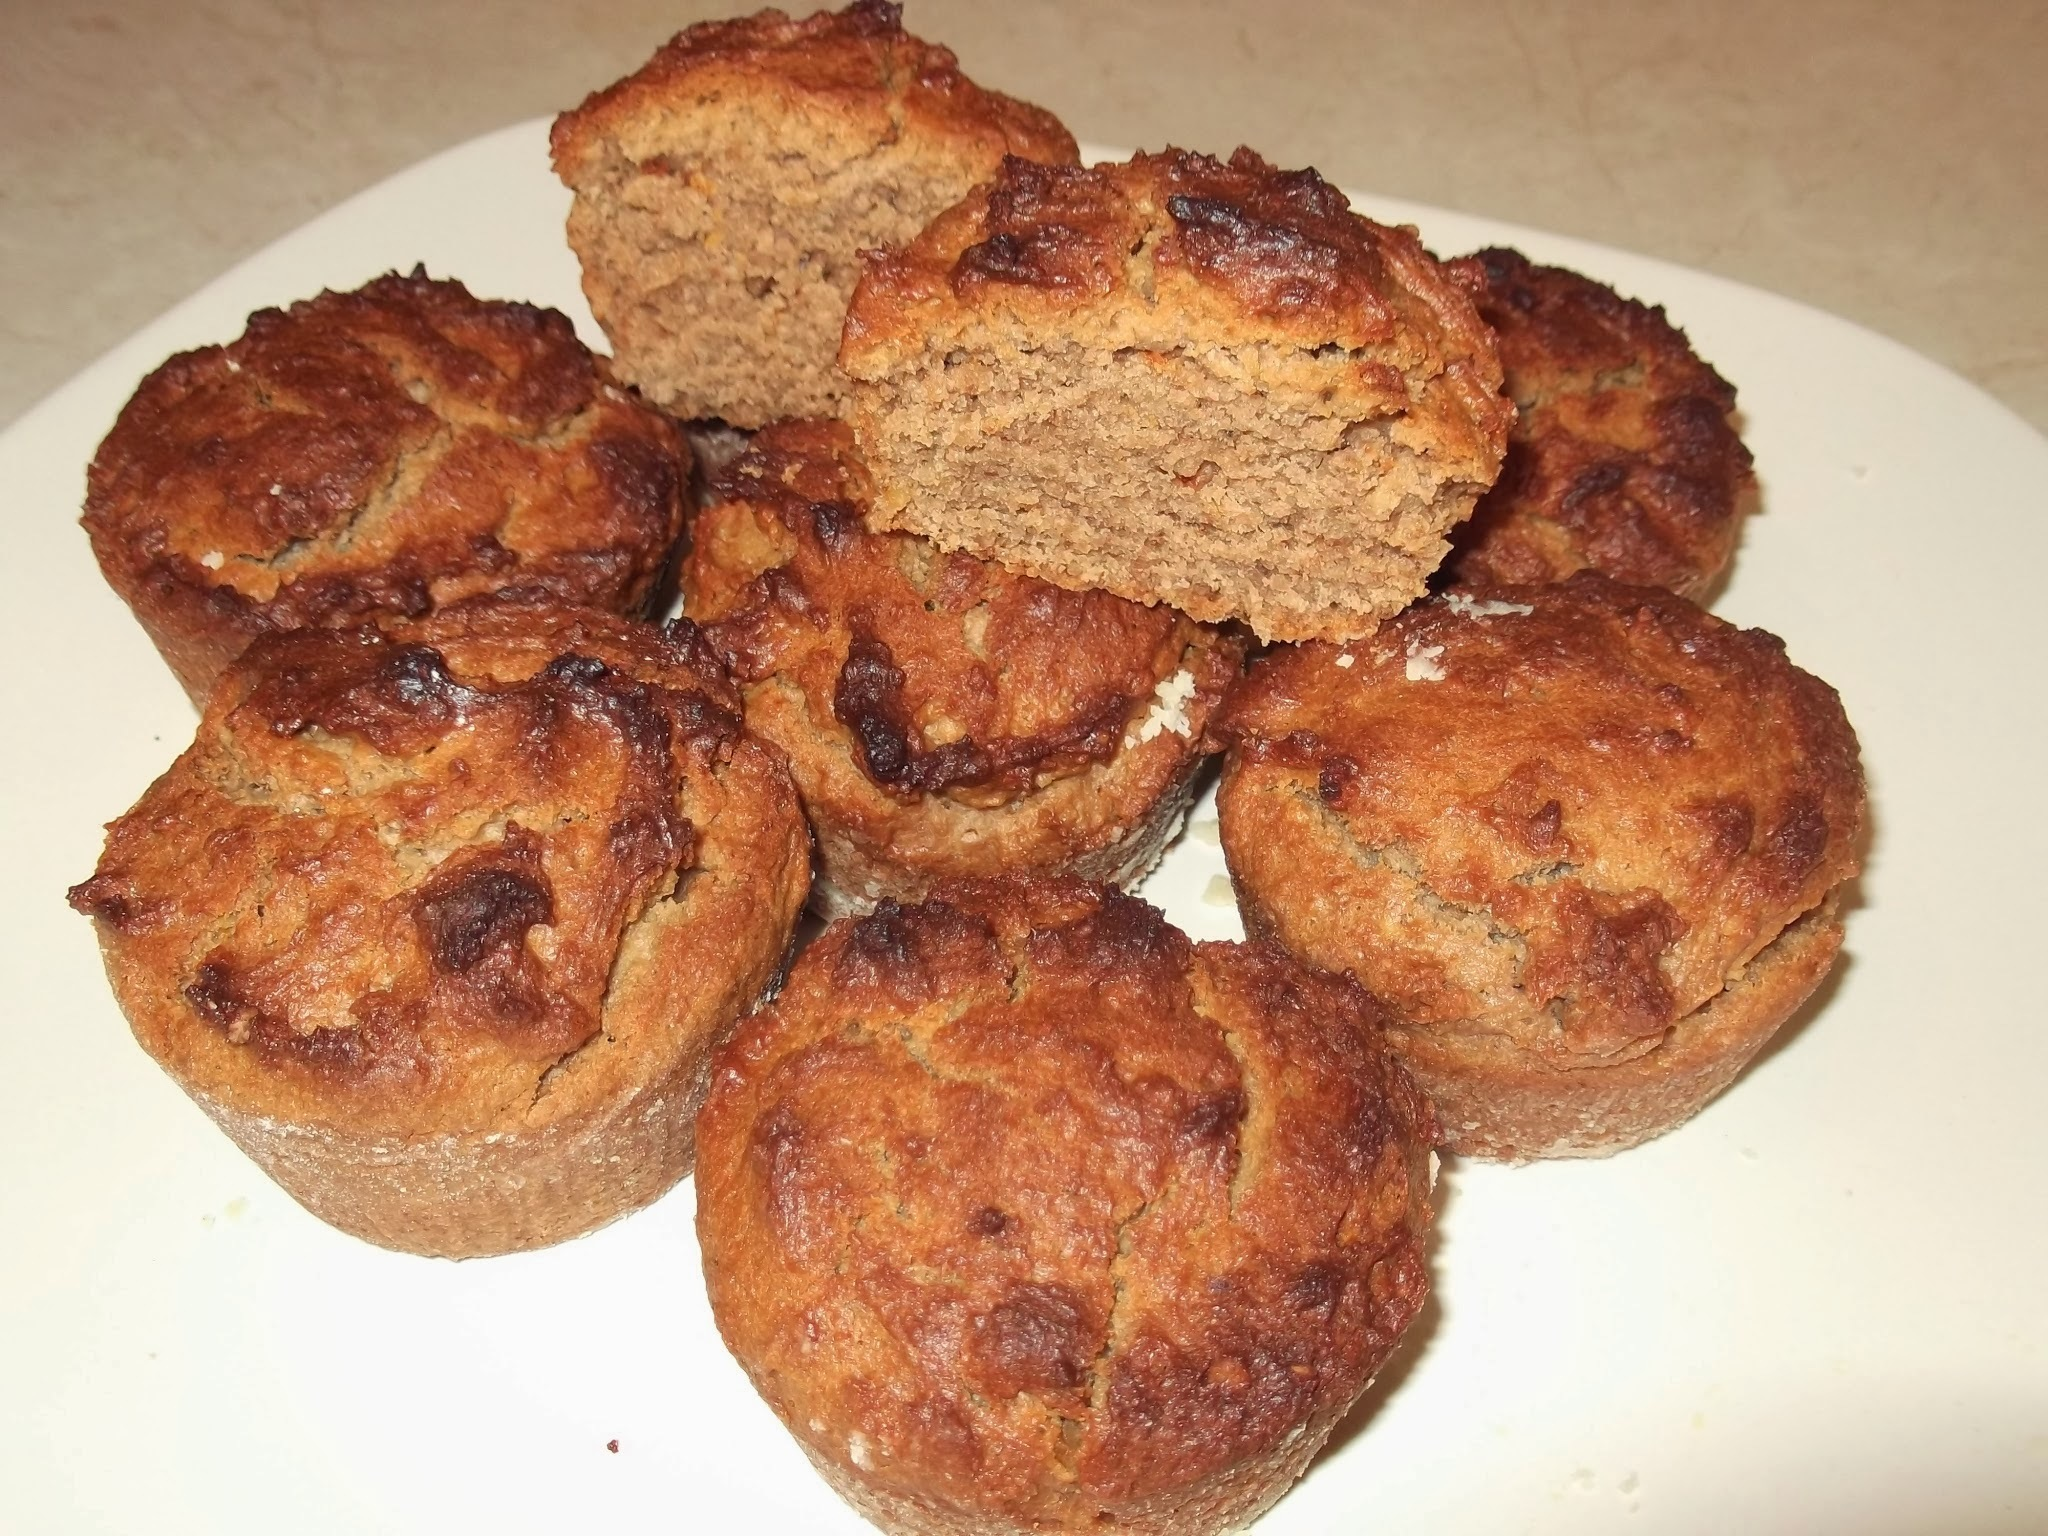 Muffins με ταχίνι και μέλι